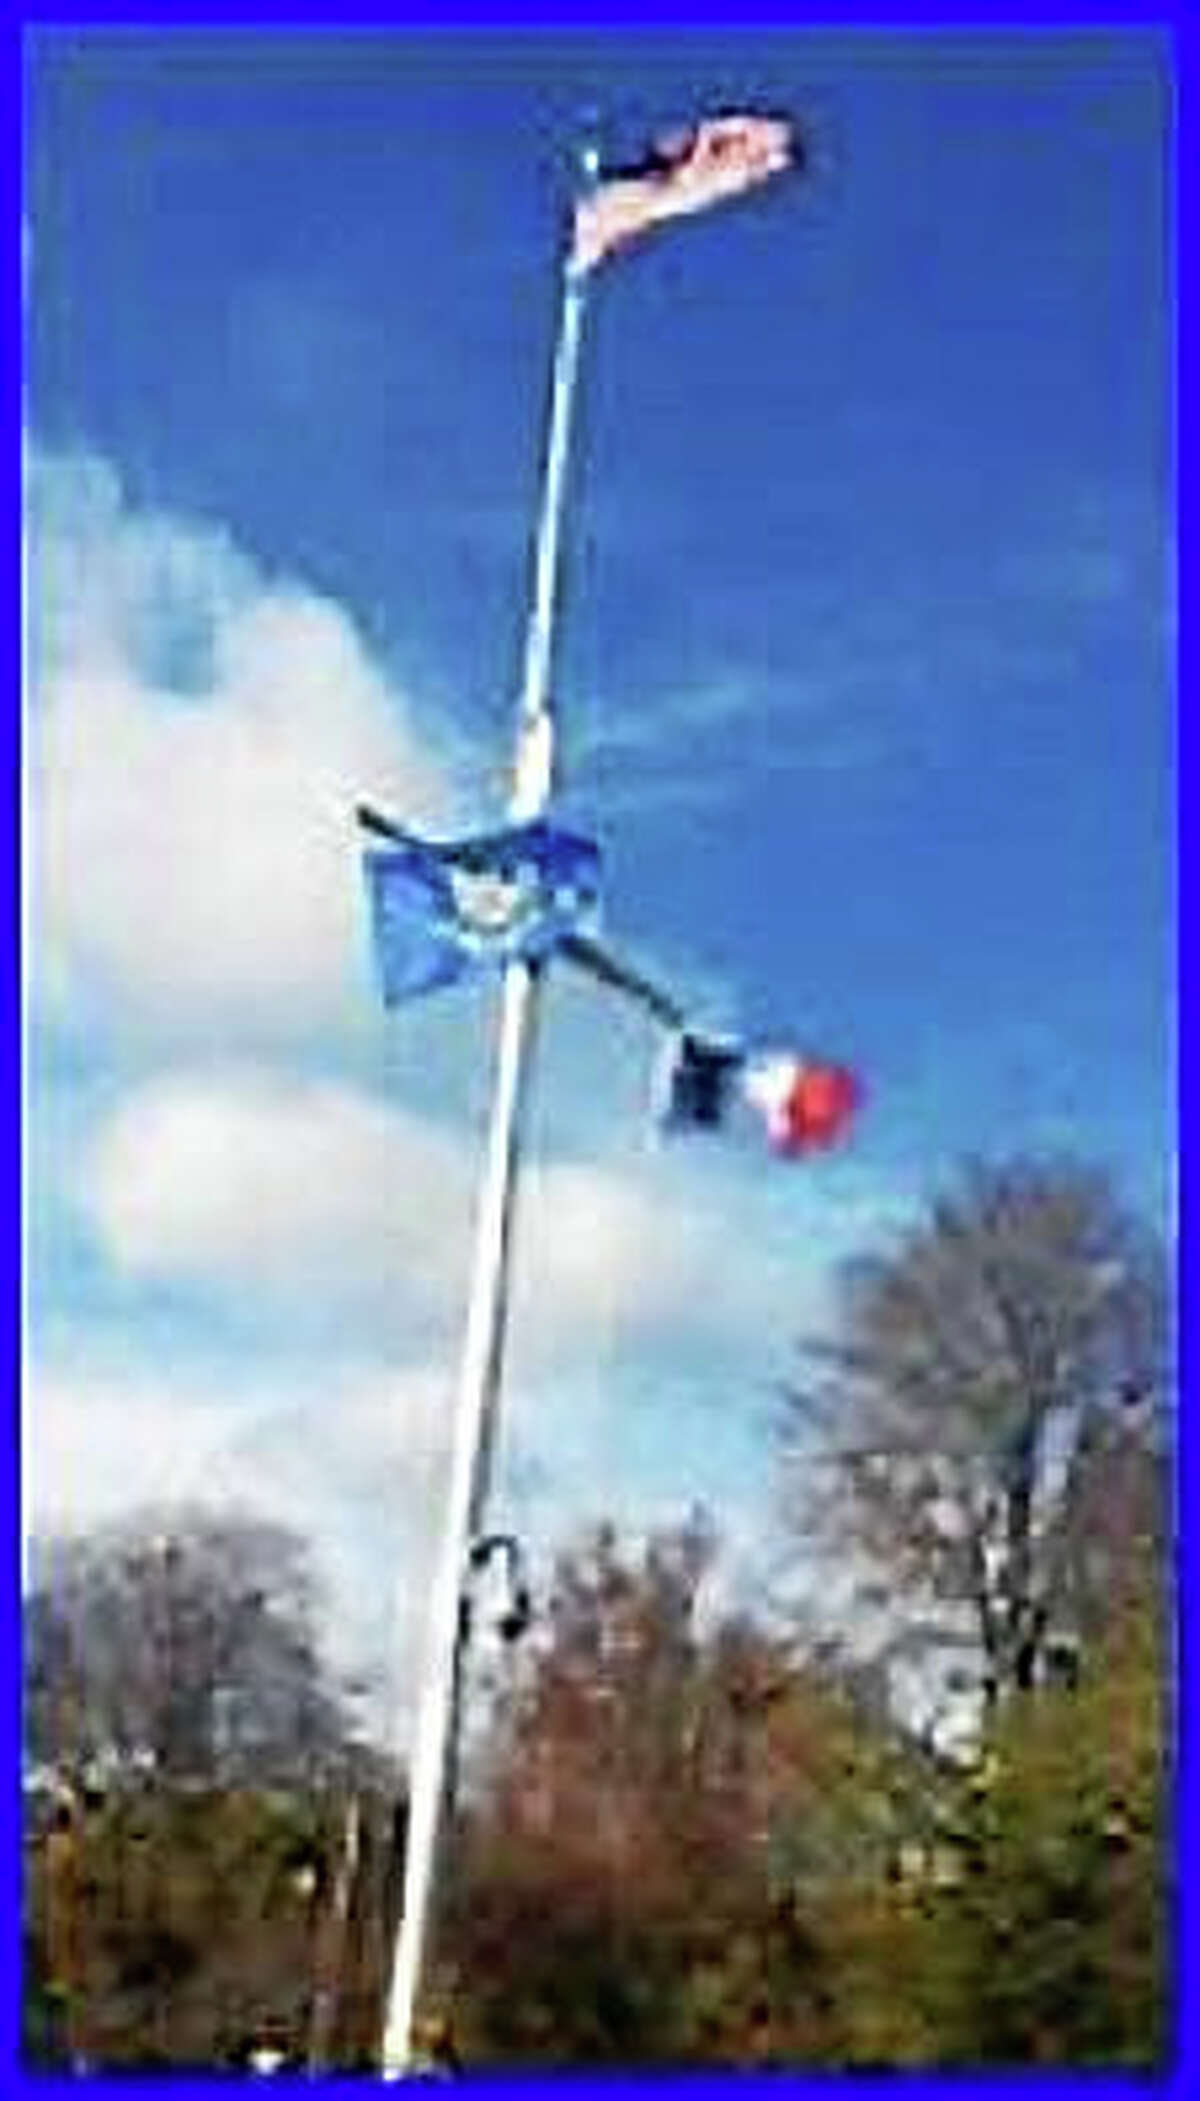 The French flag flies on the flagpole beside the state flag outside the governor's official residence.